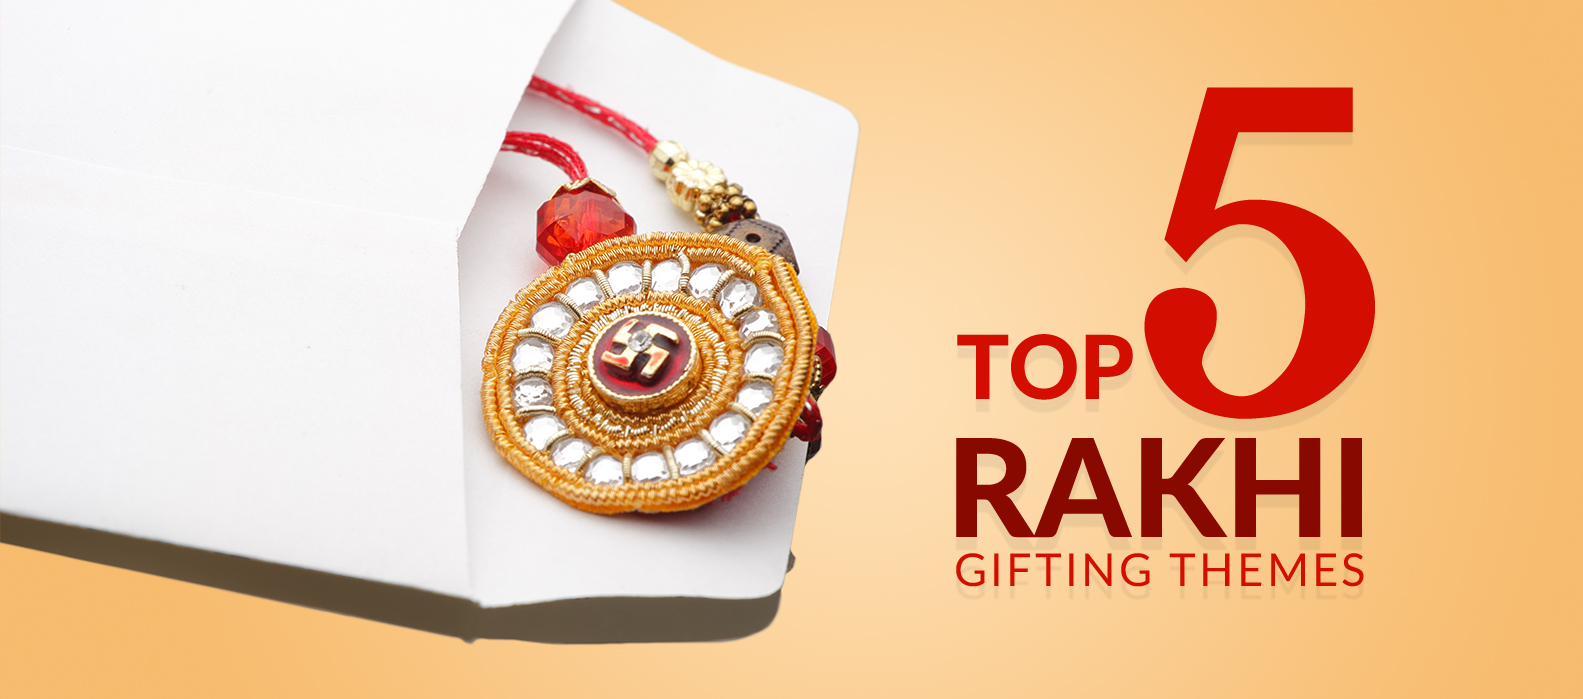 Top-5-Gifts-this-Rakhi_1583x699